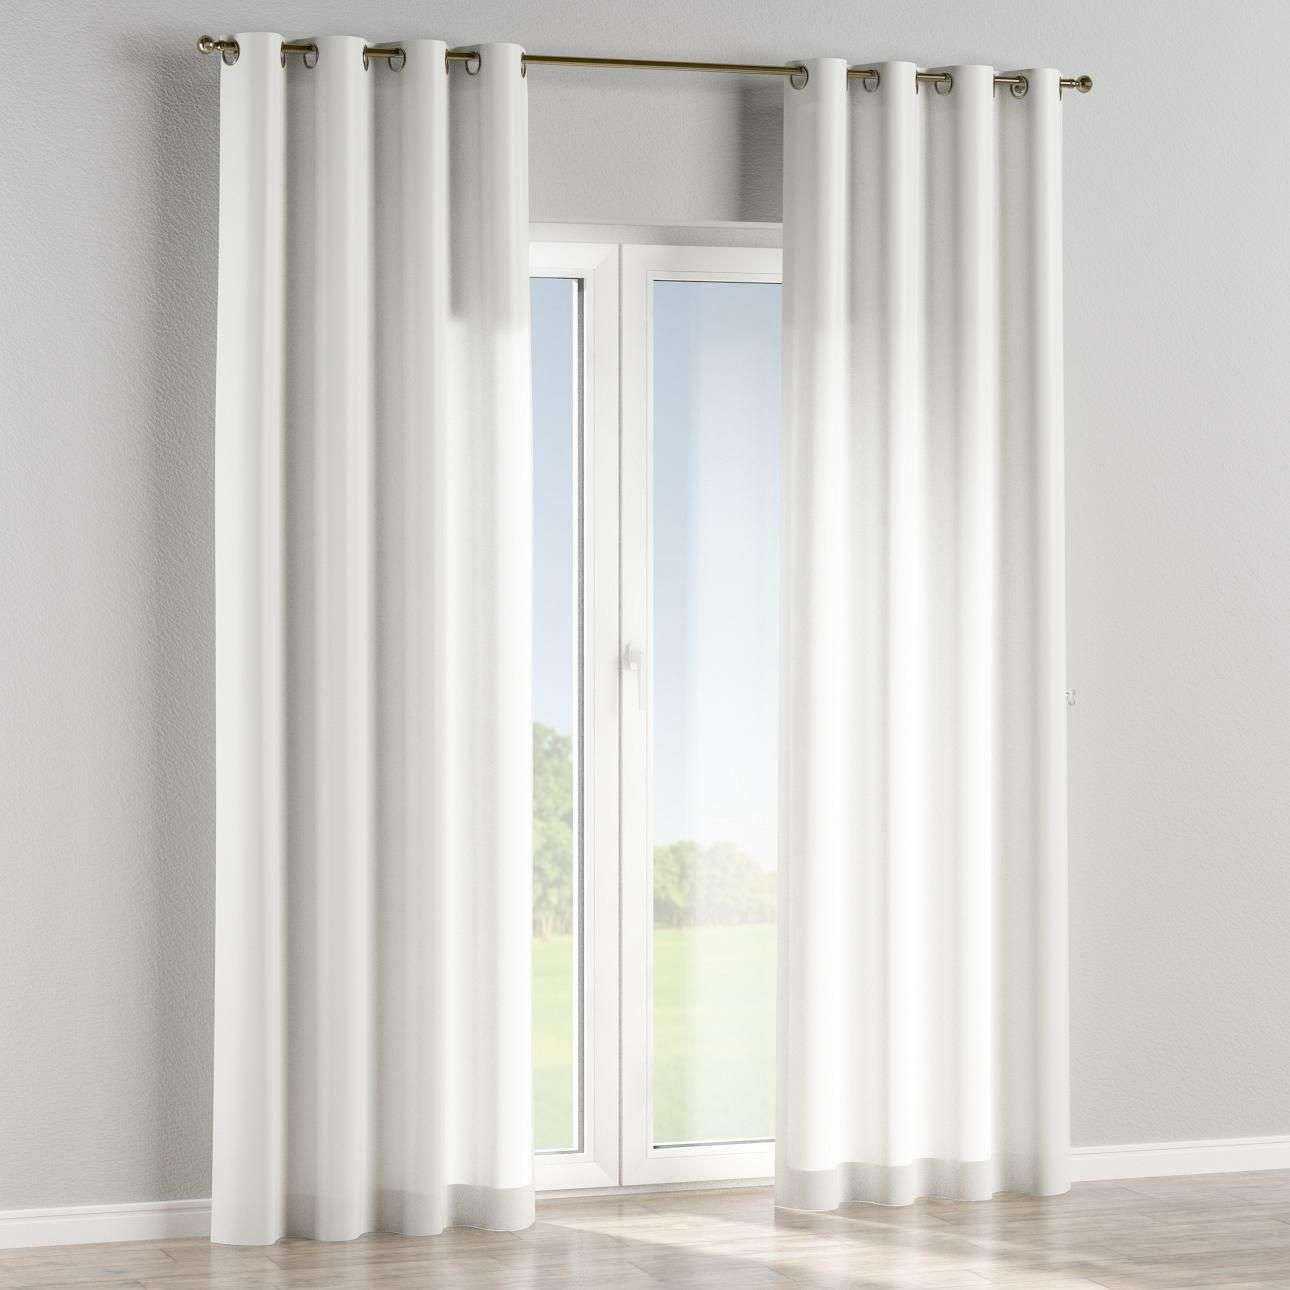 Eyelet curtains in collection SALE, fabric: 130-11